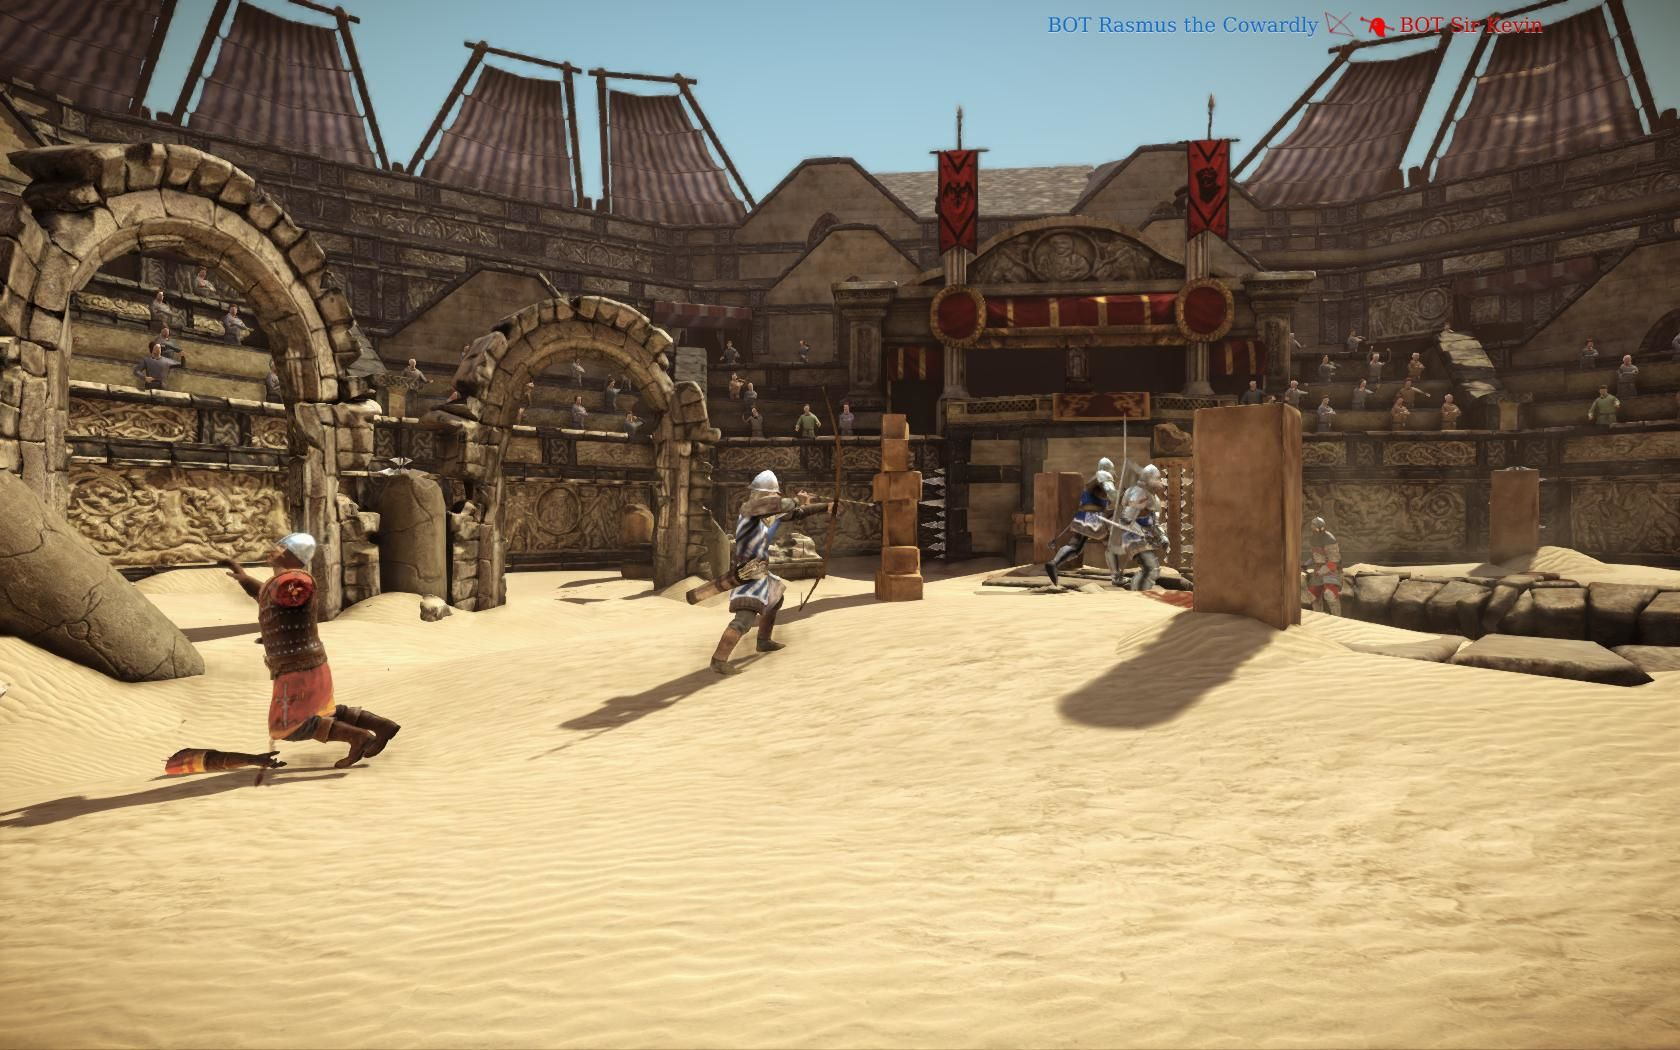 Chivalry: Medieval Warfare Windows Arena map with bots